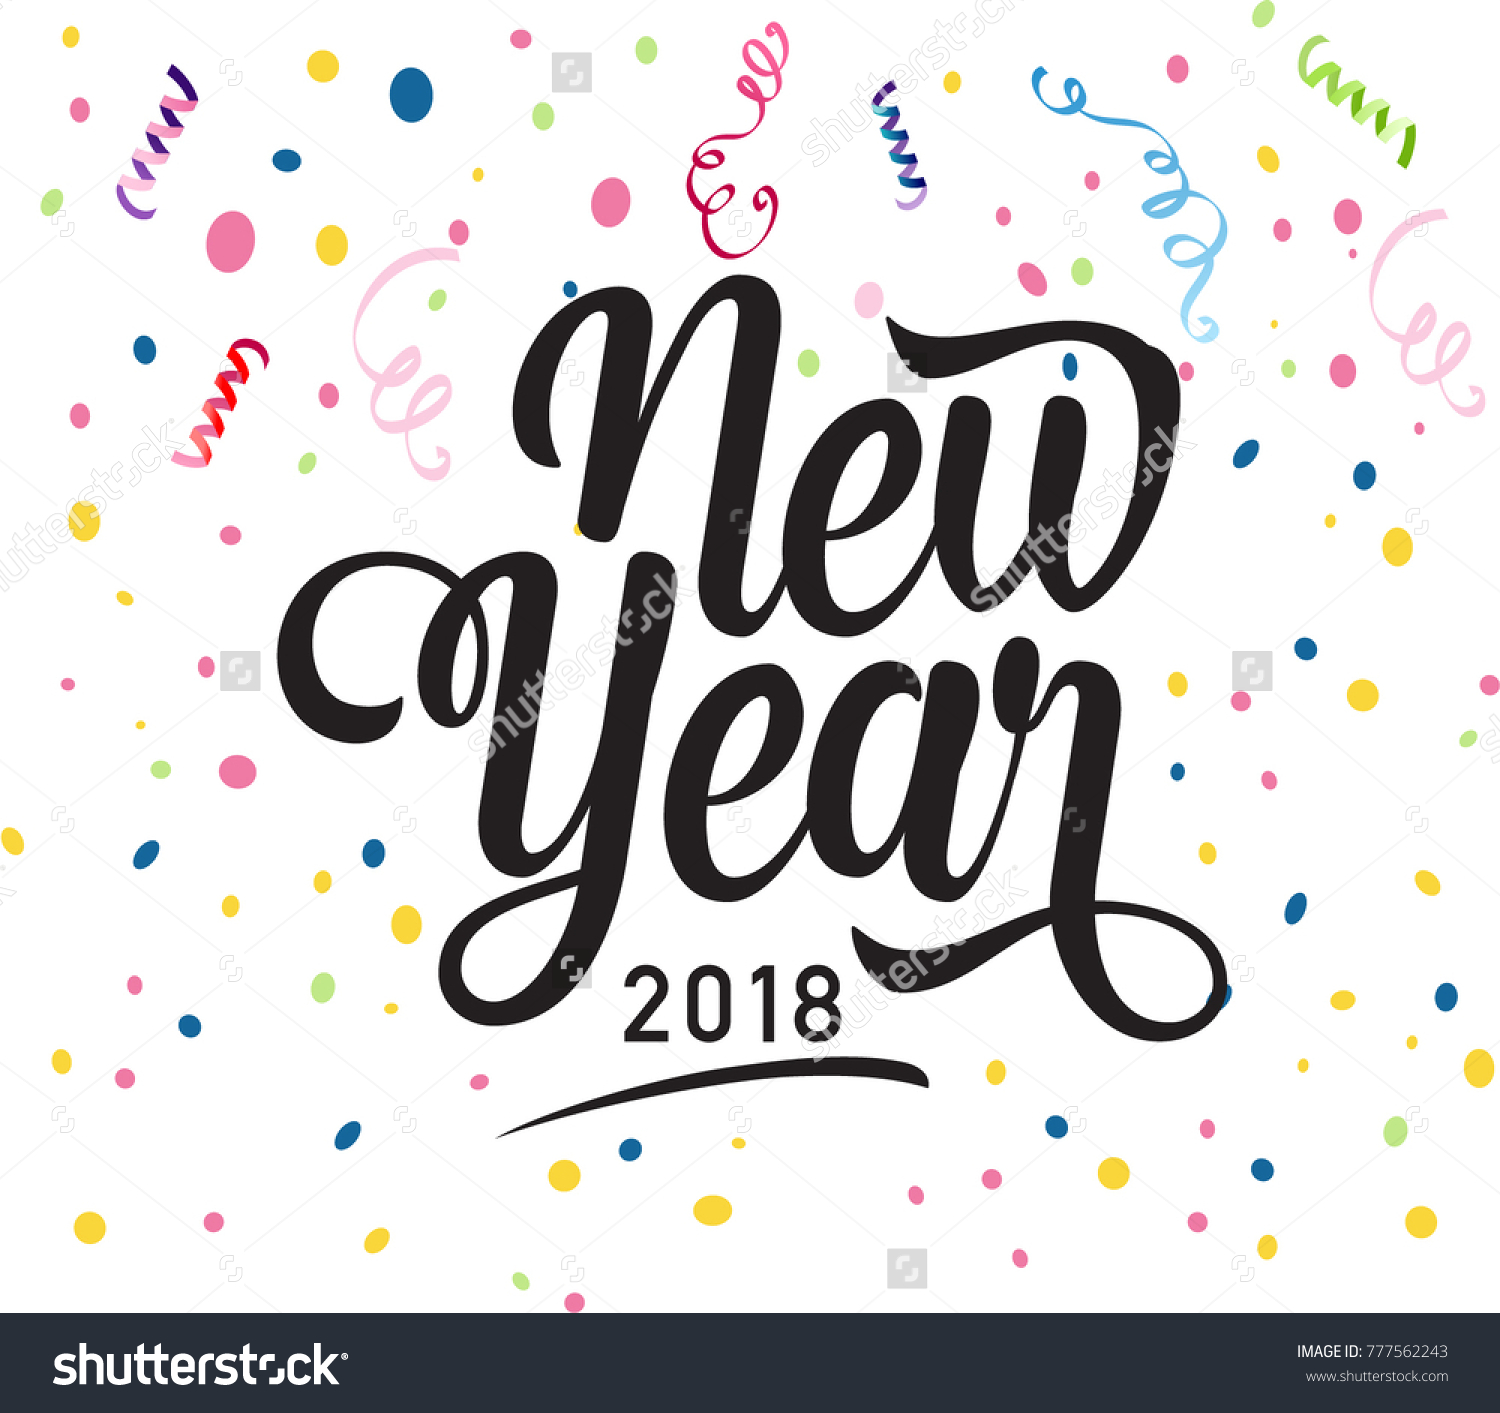 essay on new year celebration Happy new year essay for children, kids and students the modern gregorian calendar celebrates the first day on january 1 each year as the new year in addition to the gregorian calendar.